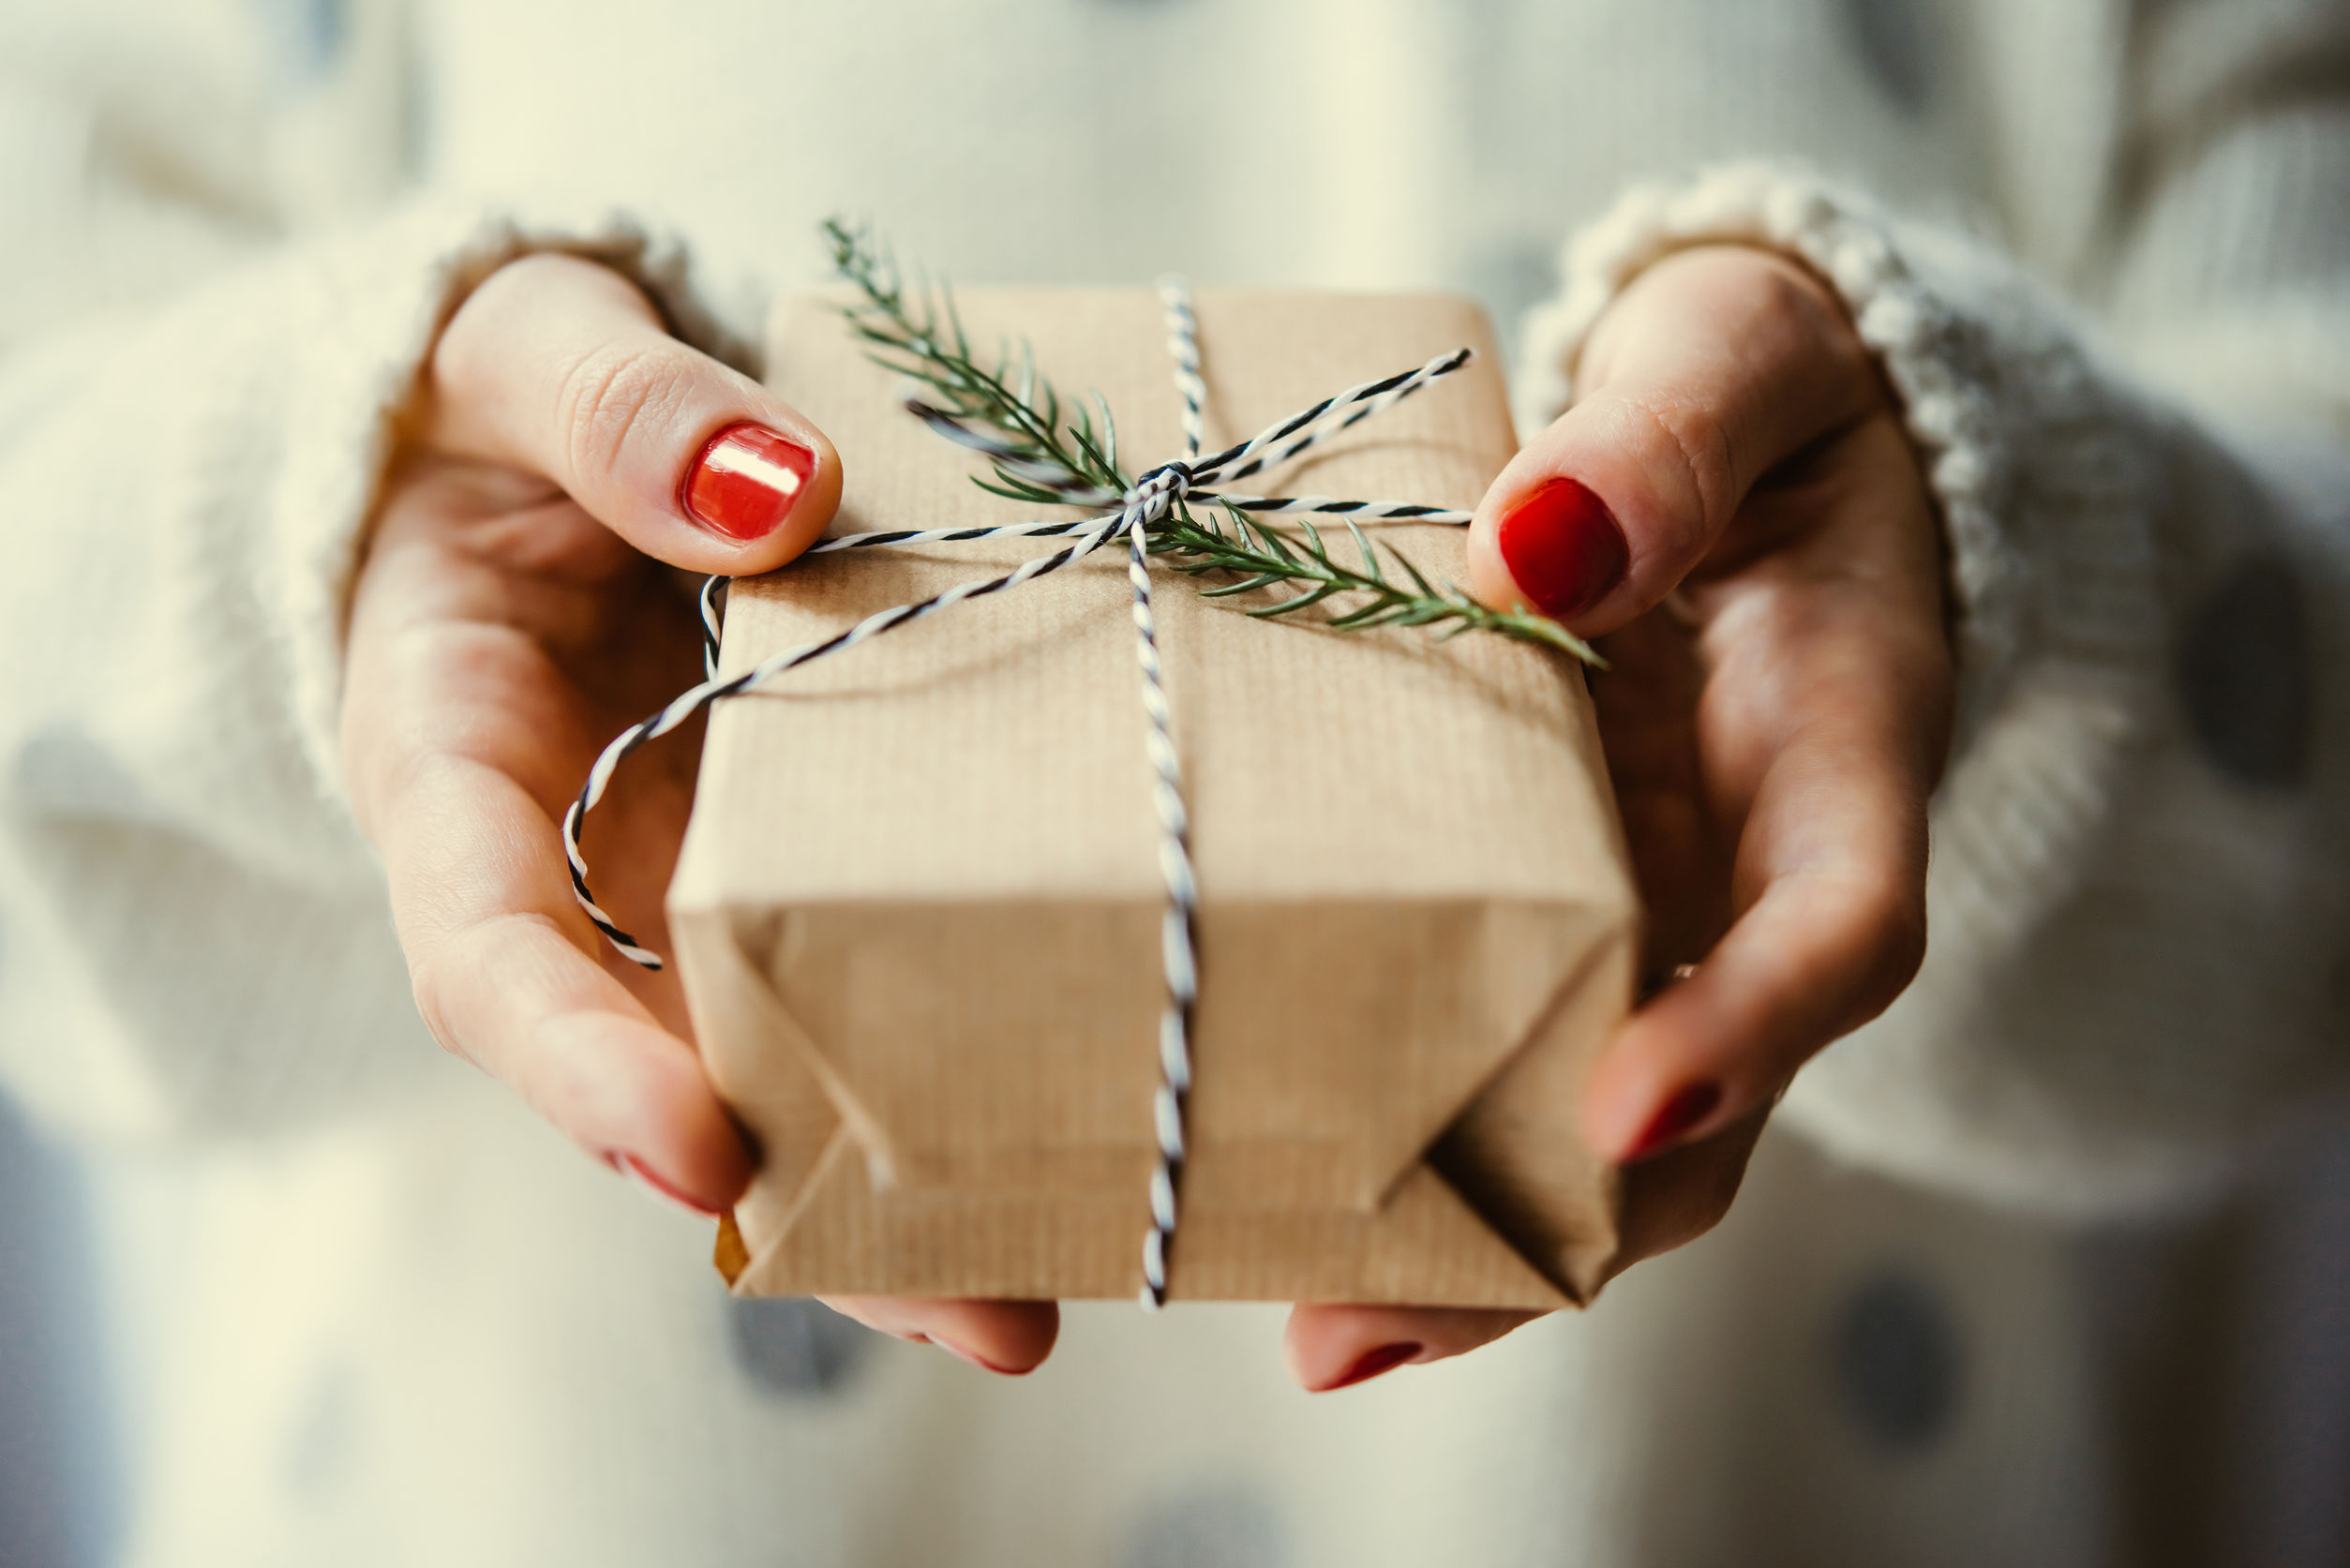 Reduce clutter and rethink Christmas presents